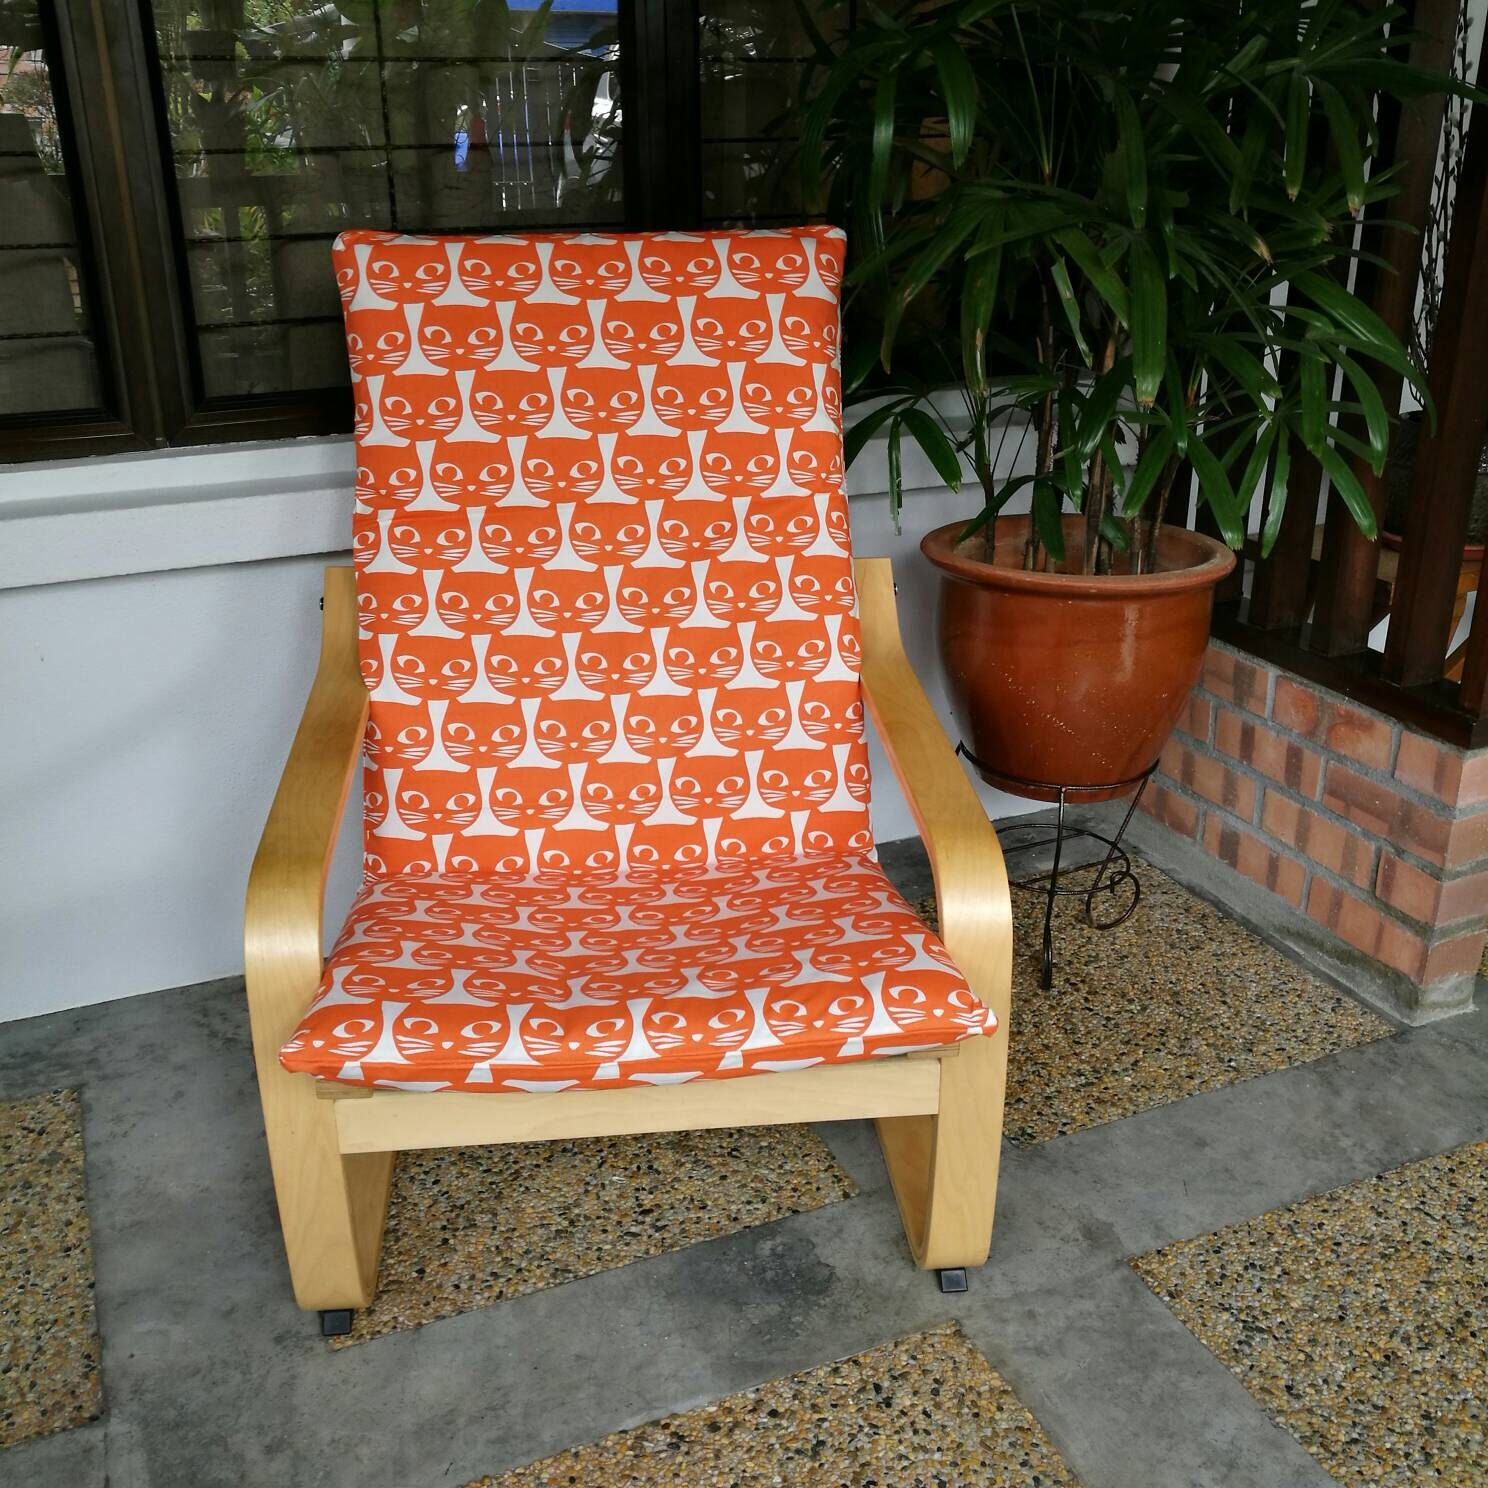 Ikea Poang Chair Covers Uk Bedroom Ideas Pin By Zelin Ozturk On B Storage And Furniture Pinterest Cushion Cover Orange Kittens Malimalihome Etsy Https